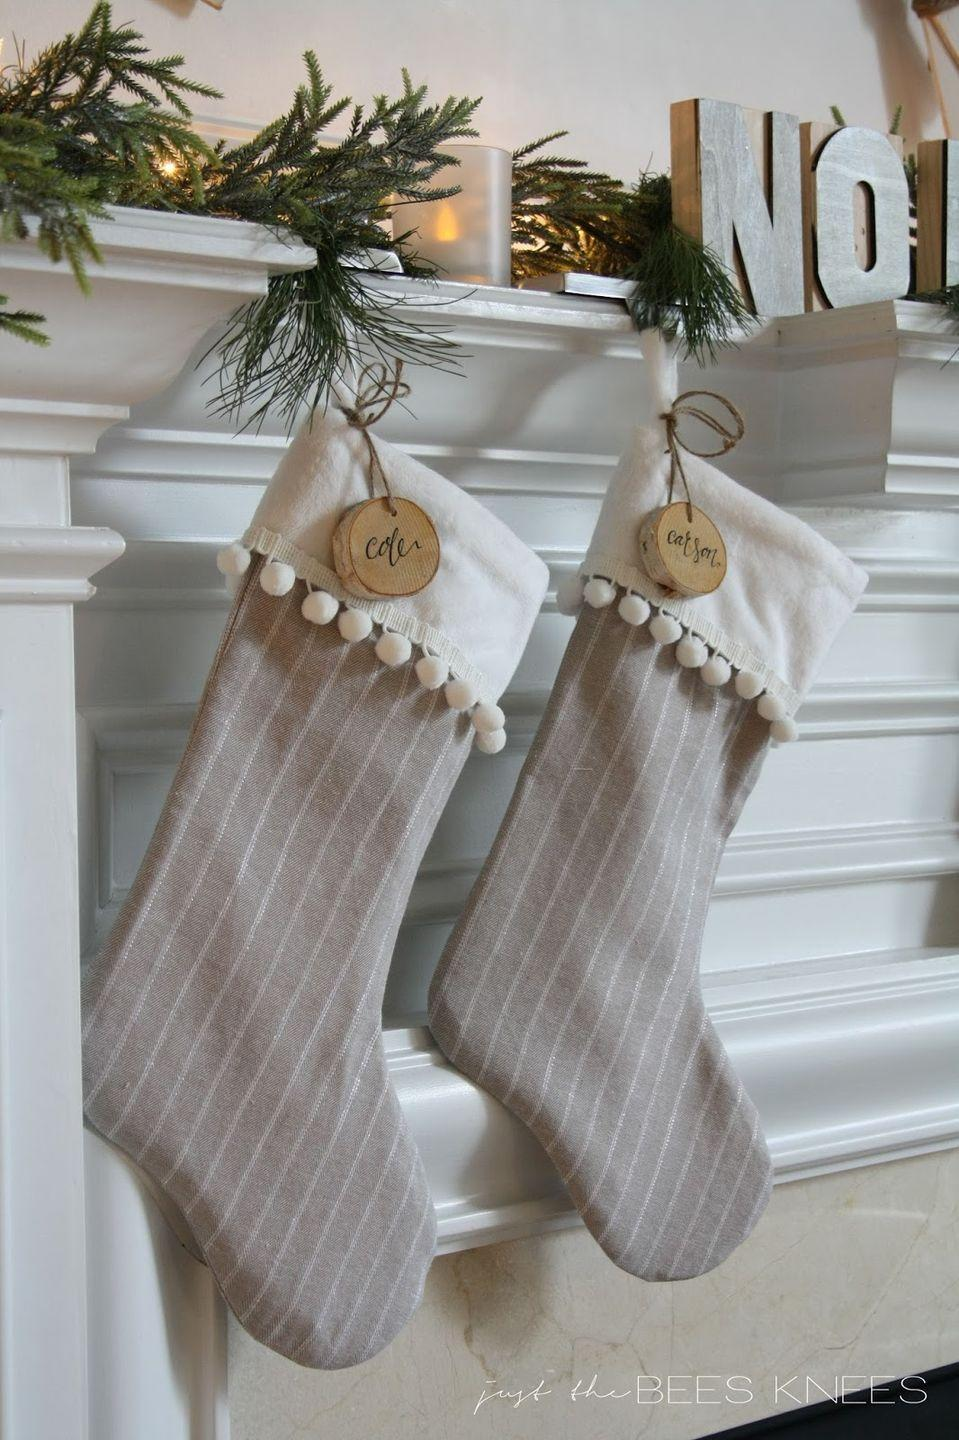 """<p>Before hanging, add some custom tags using <a href=""""https://www.amazon.com/Assorted-Decorations-Ornaments-Super-Outlet/dp/B01FRDI8EY/?tag=syn-yahoo-20&ascsubtag=%5Bartid%7C10050.g.1407%5Bsrc%7Cyahoo-us"""" rel=""""nofollow noopener"""" target=""""_blank"""" data-ylk=""""slk:birch slices"""" class=""""link rapid-noclick-resp"""">birch slices</a> and a sharpie for an adorably festive touch. </p><p><strong>Get the tutorial at <a href=""""http://www.justthebeesknees.com/2014/12/diy-pom-pom-trim-stocking-tutorial.html#_a5y_p=4567071"""" rel=""""nofollow noopener"""" target=""""_blank"""" data-ylk=""""slk:Just The Bee's Knees"""" class=""""link rapid-noclick-resp"""">Just The Bee's Knees</a></strong><strong>.</strong></p><p><strong><a class=""""link rapid-noclick-resp"""" href=""""https://www.amazon.com/Assorted-Decorations-Ornaments-Super-Outlet/dp/B01FRDI8EY/?tag=syn-yahoo-20&ascsubtag=%5Bartid%7C10050.g.1407%5Bsrc%7Cyahoo-us"""" rel=""""nofollow noopener"""" target=""""_blank"""" data-ylk=""""slk:SHOP WOOD SLICES"""">SHOP WOOD SLICES</a><br></strong></p>"""